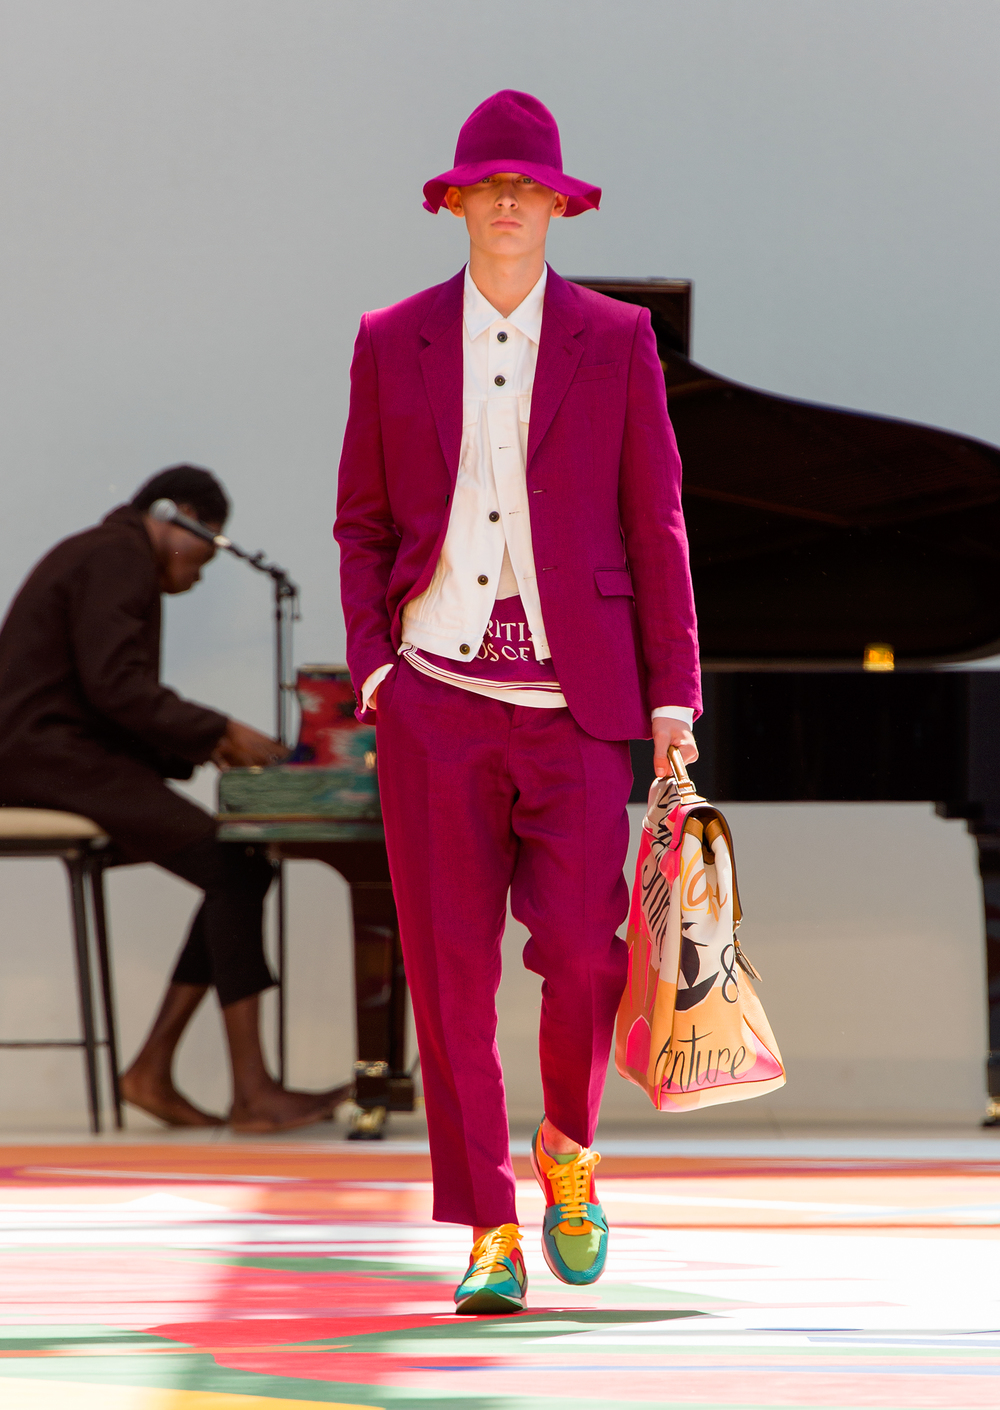 Burberry Prorsum Menswear Spring Summer 2015 Collection - Look 27.jpg